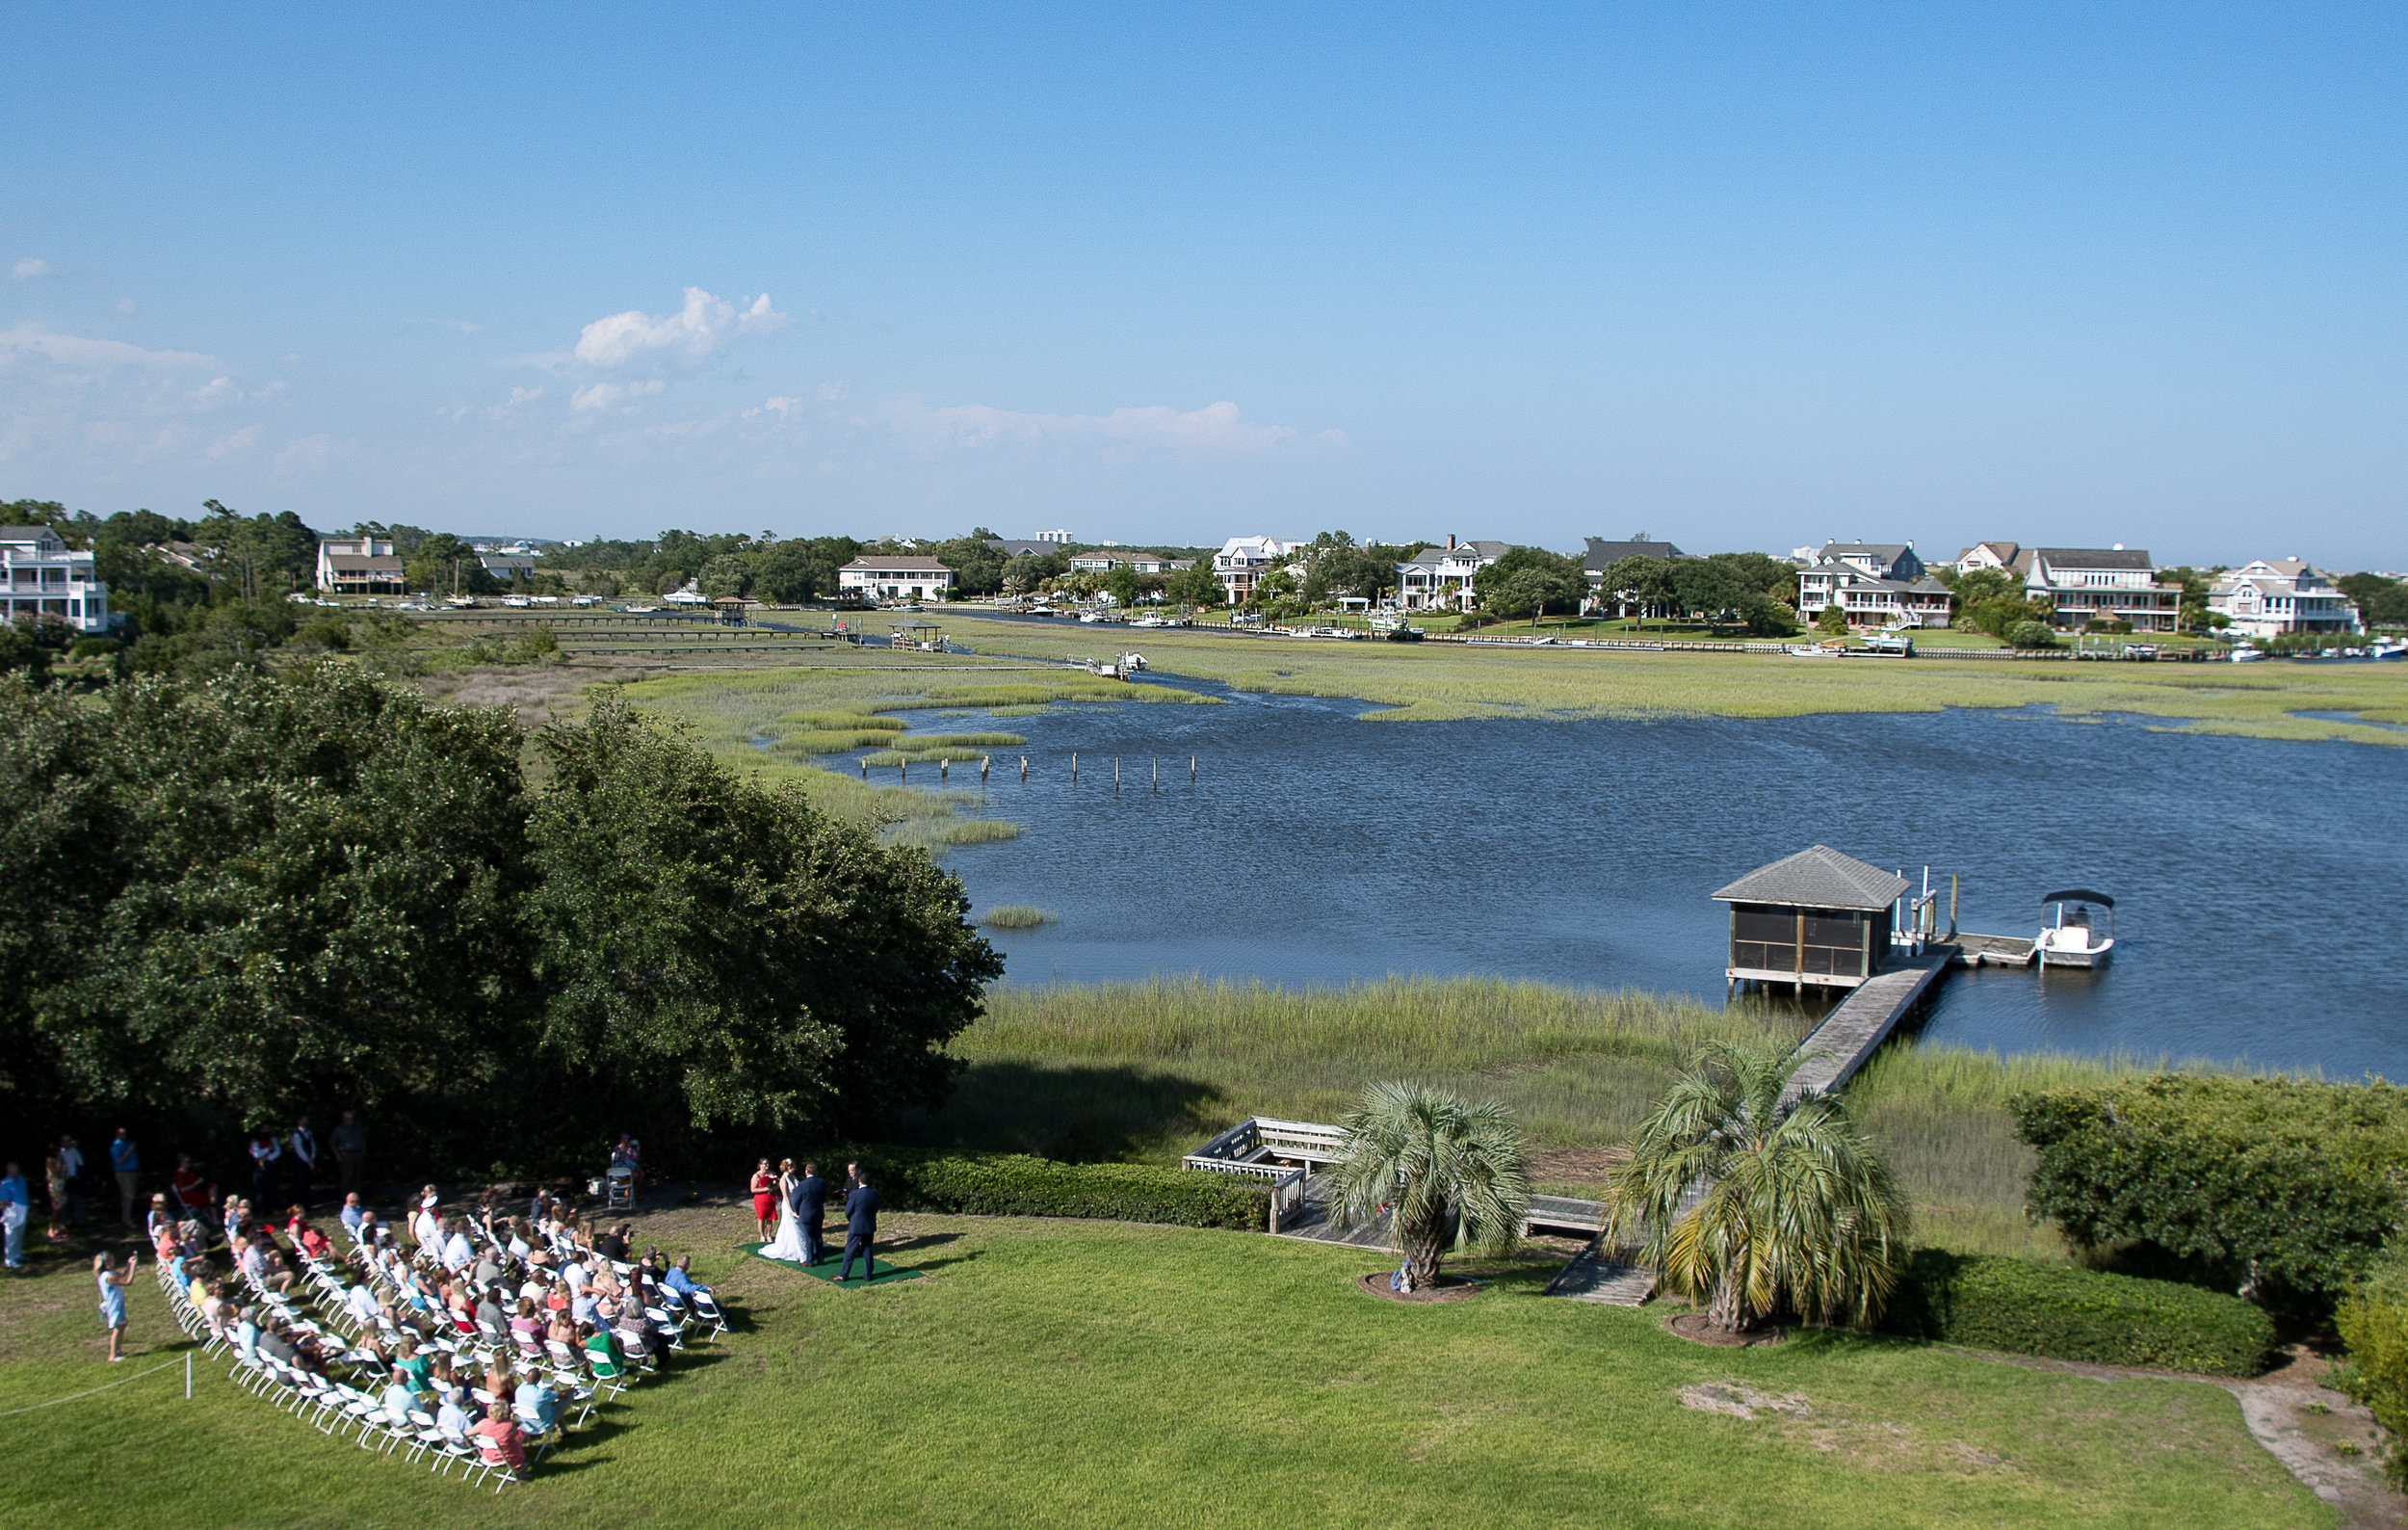 - Beautiful view of ceremony from rooftop of intracoastal waterway residence.